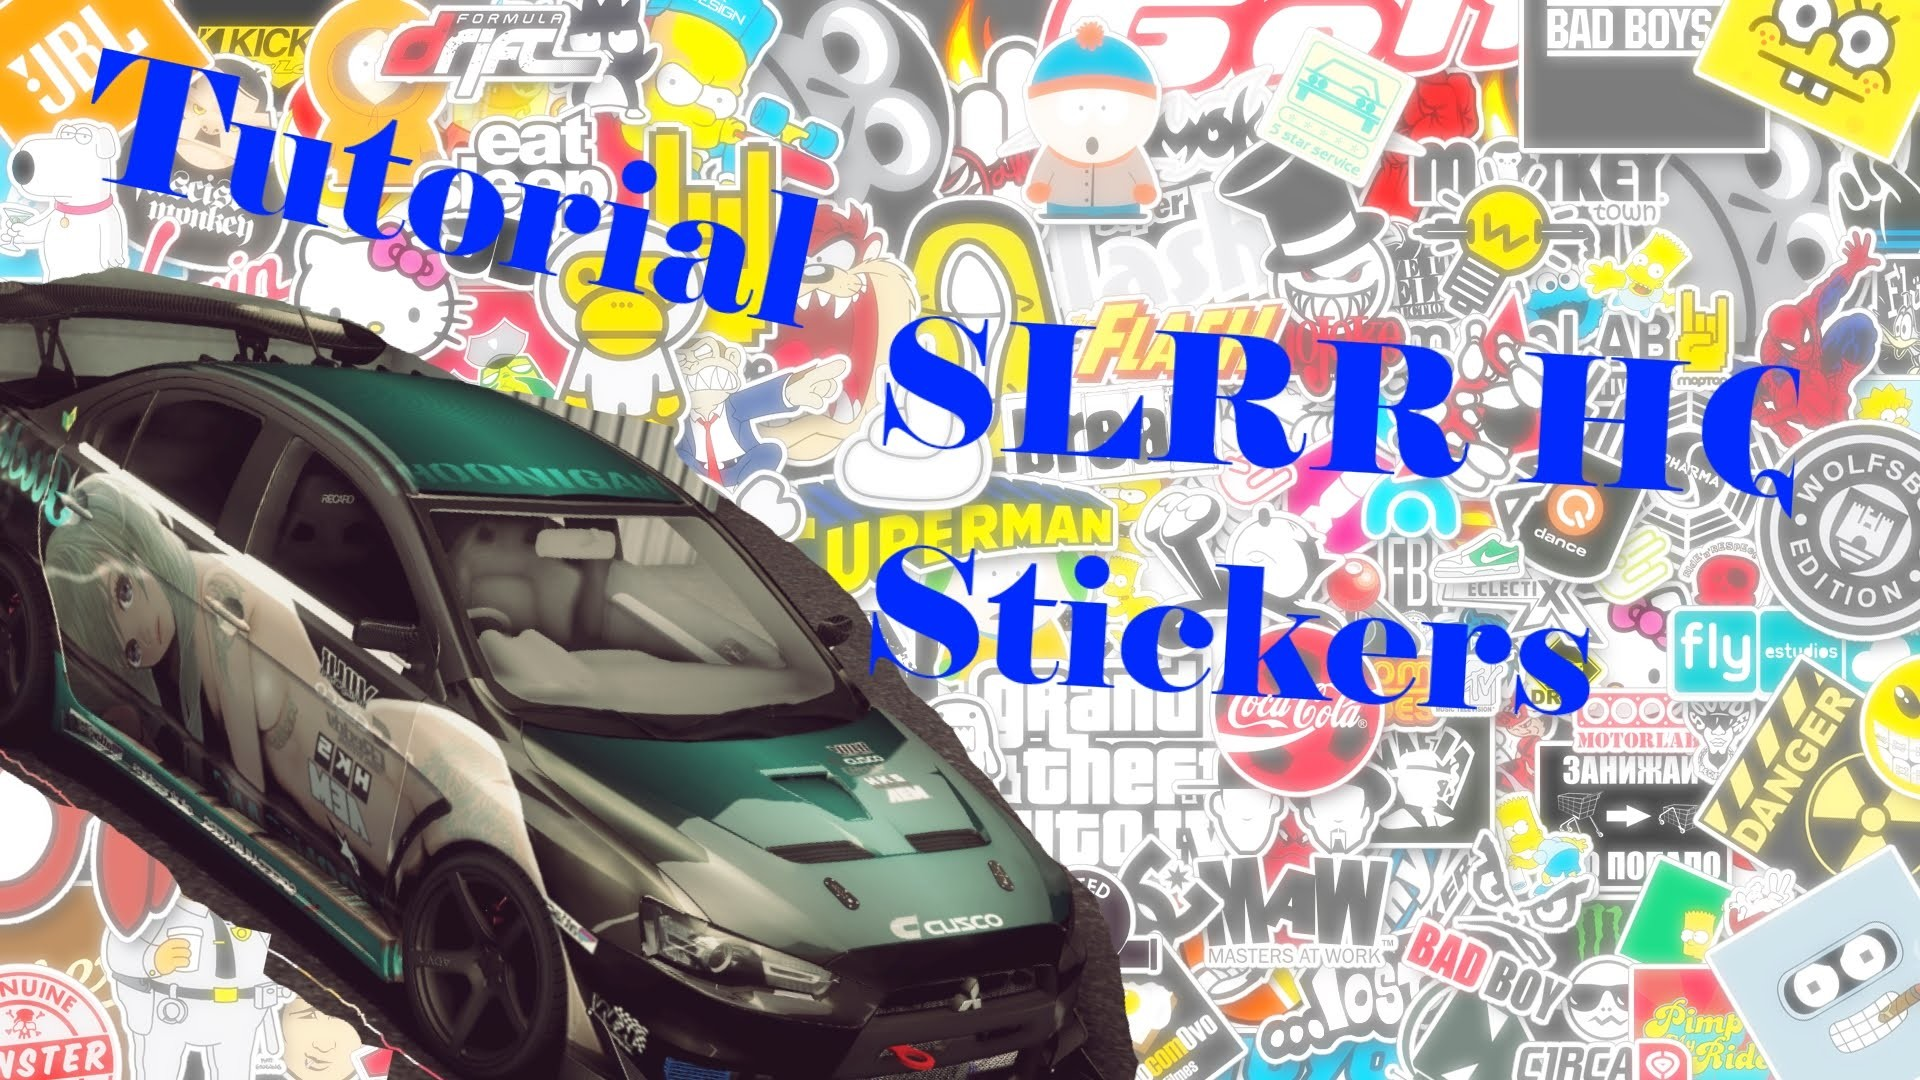 TUTORIAL: How to get HQ sticker in SLRR